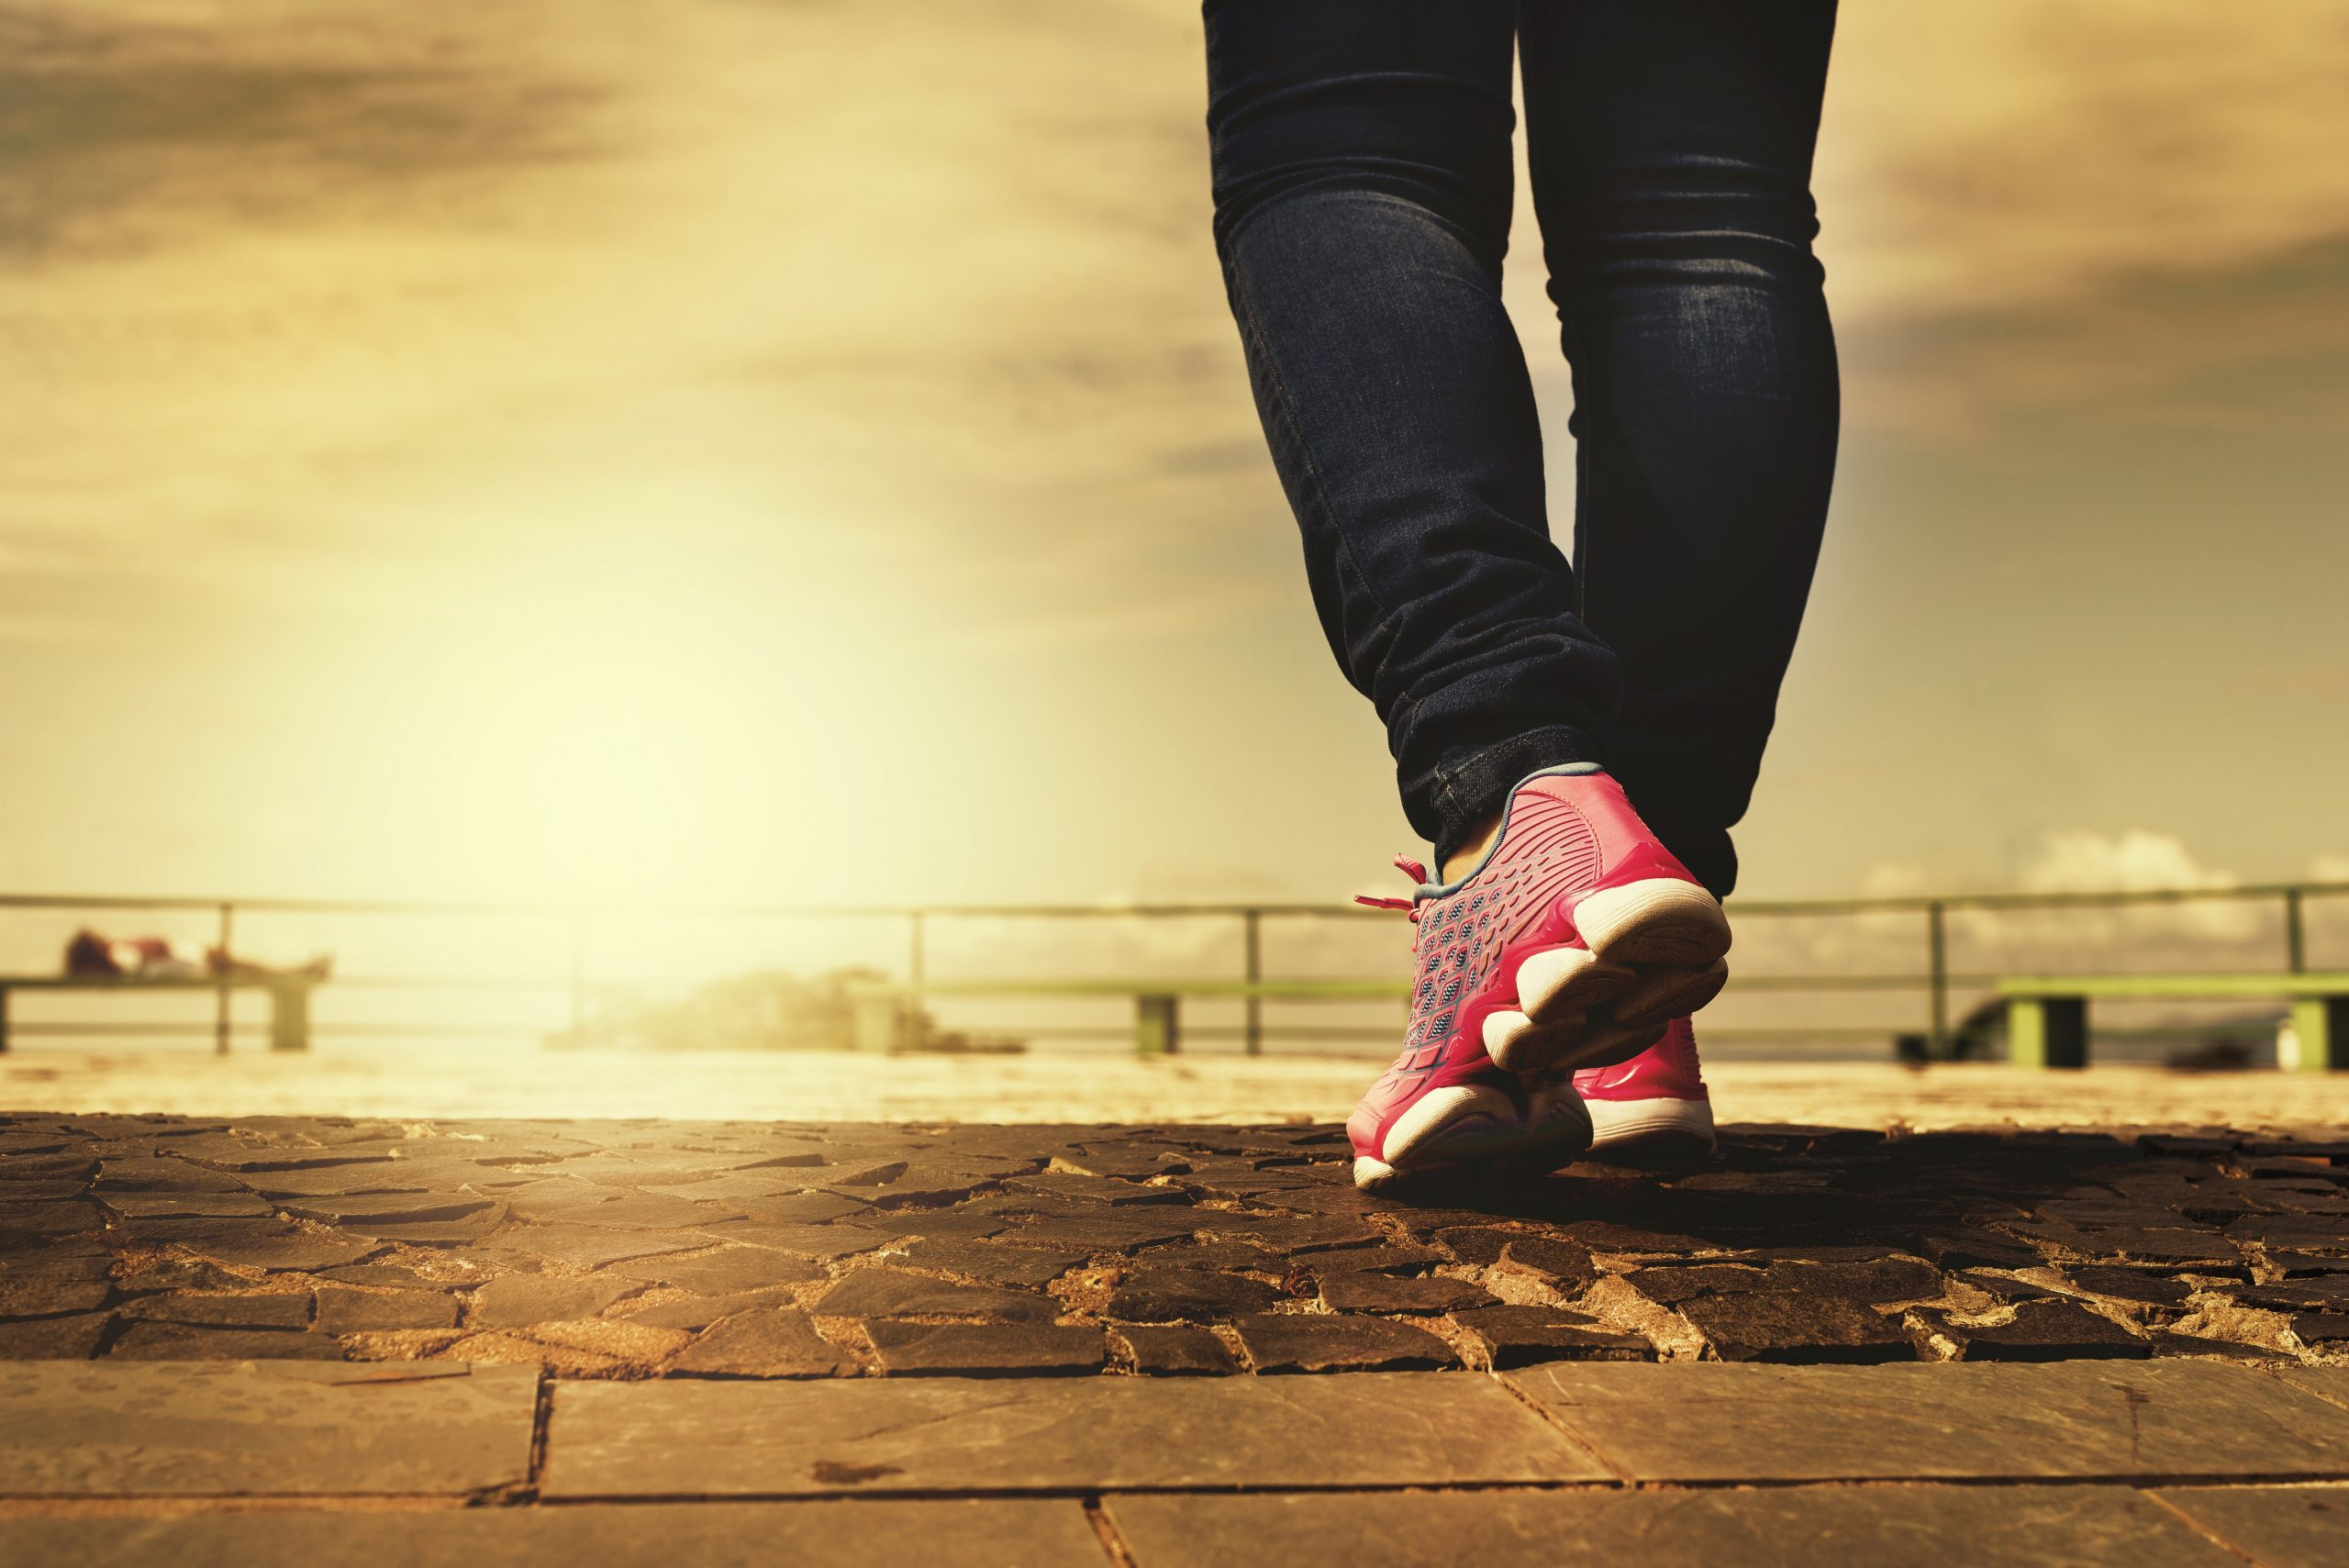 STAYING ACTIVE AT HOME- SOME IDEAS